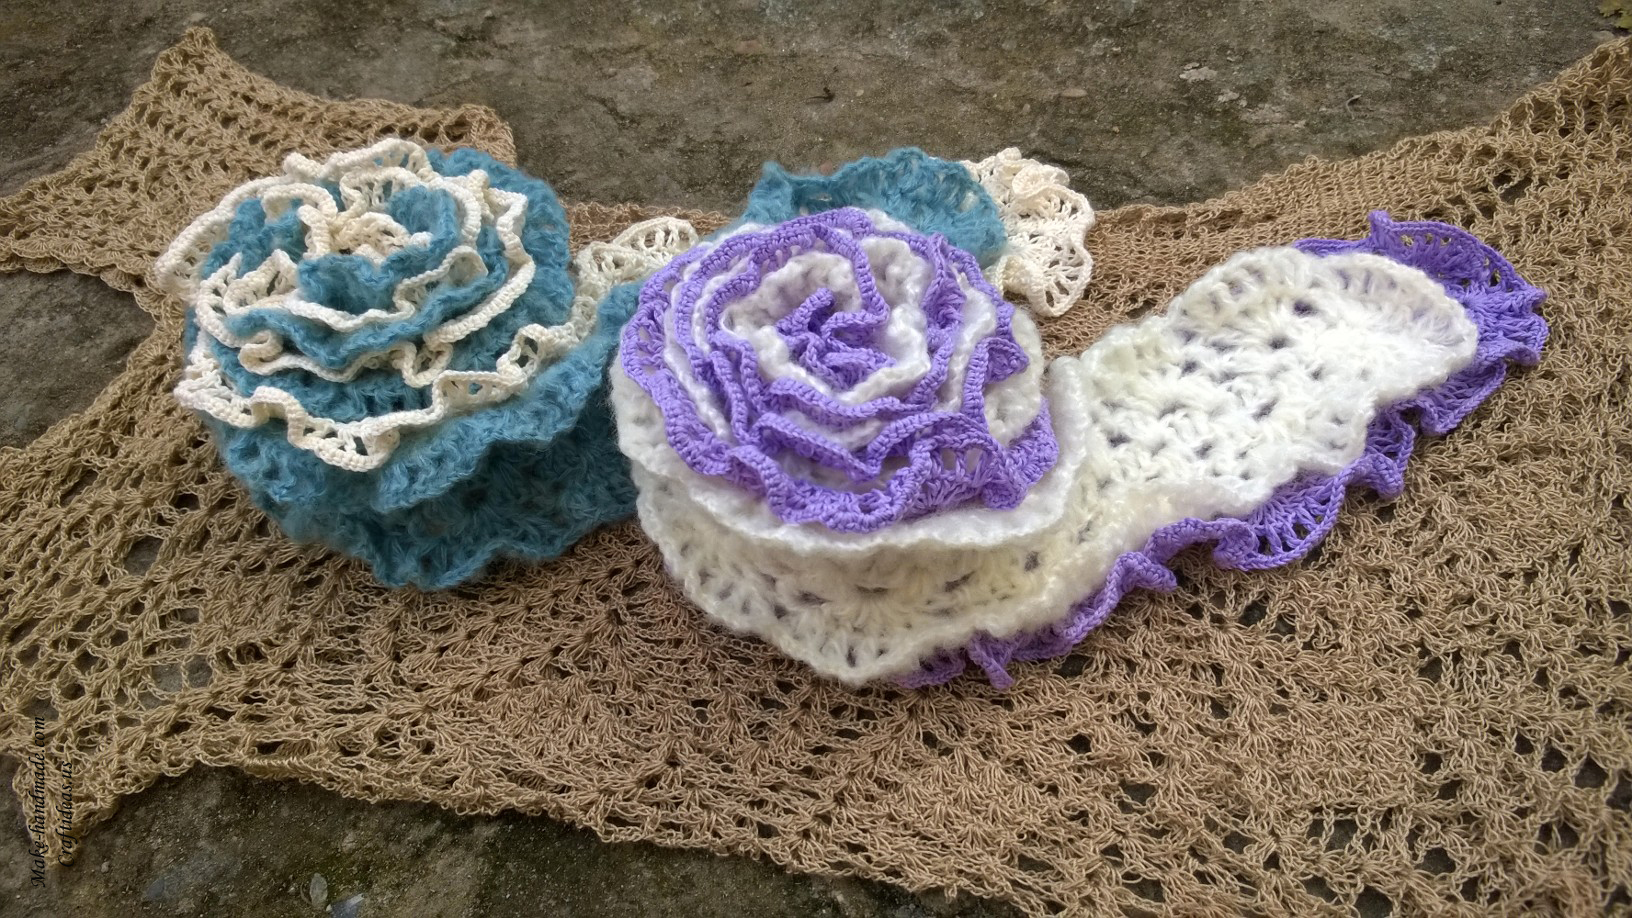 Crochet lace charming scarf ideas - Craft Ideas